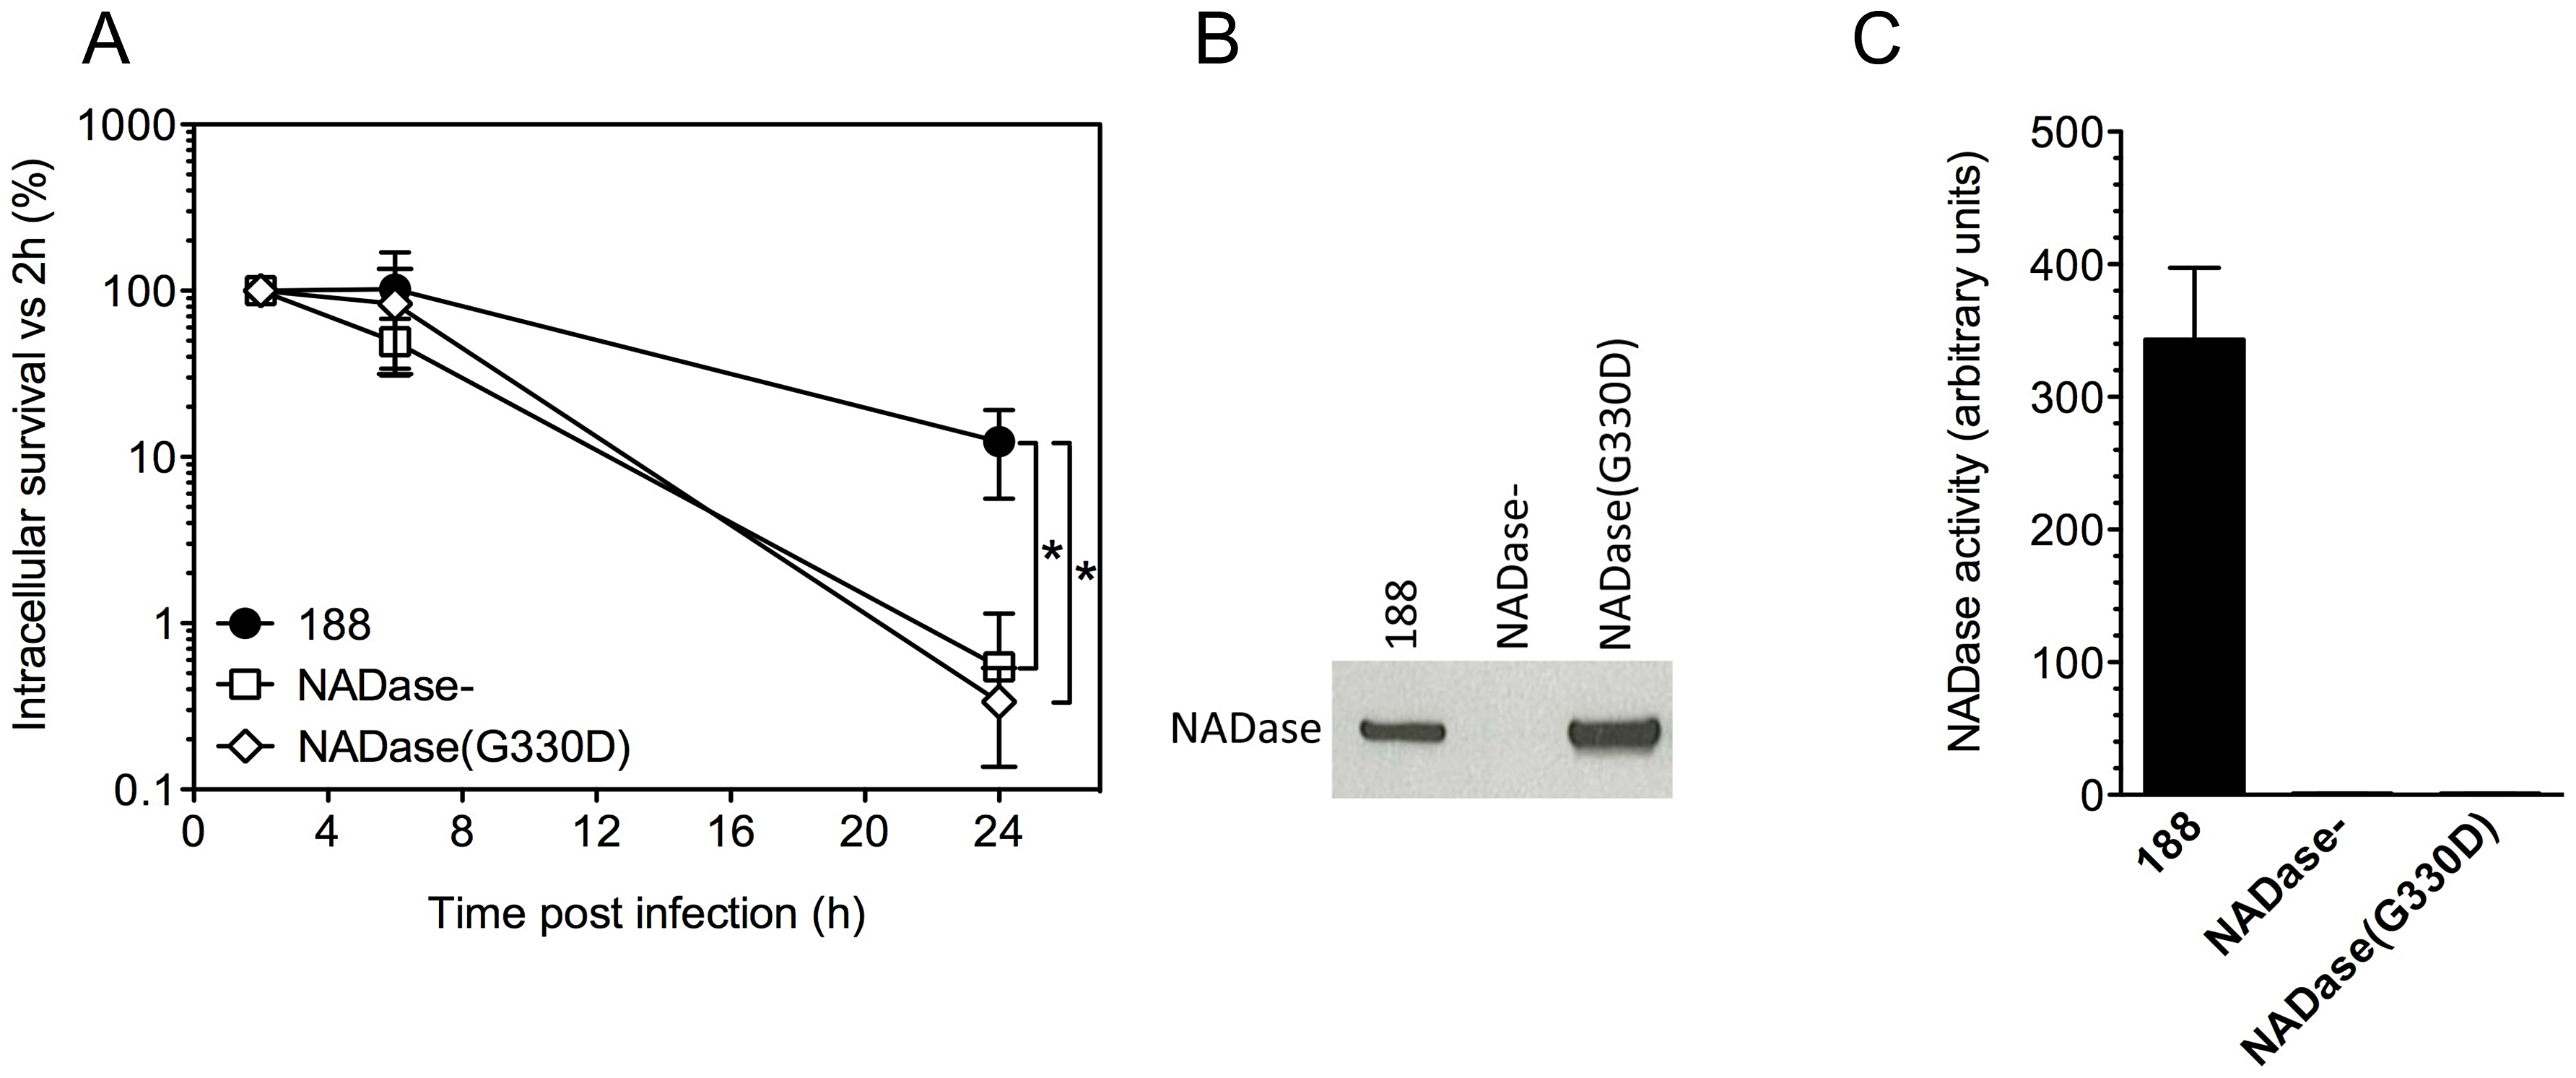 Expression of active NADase plays a central role in the intracellular survival of GAS in oropharyngeal keratinocytes.